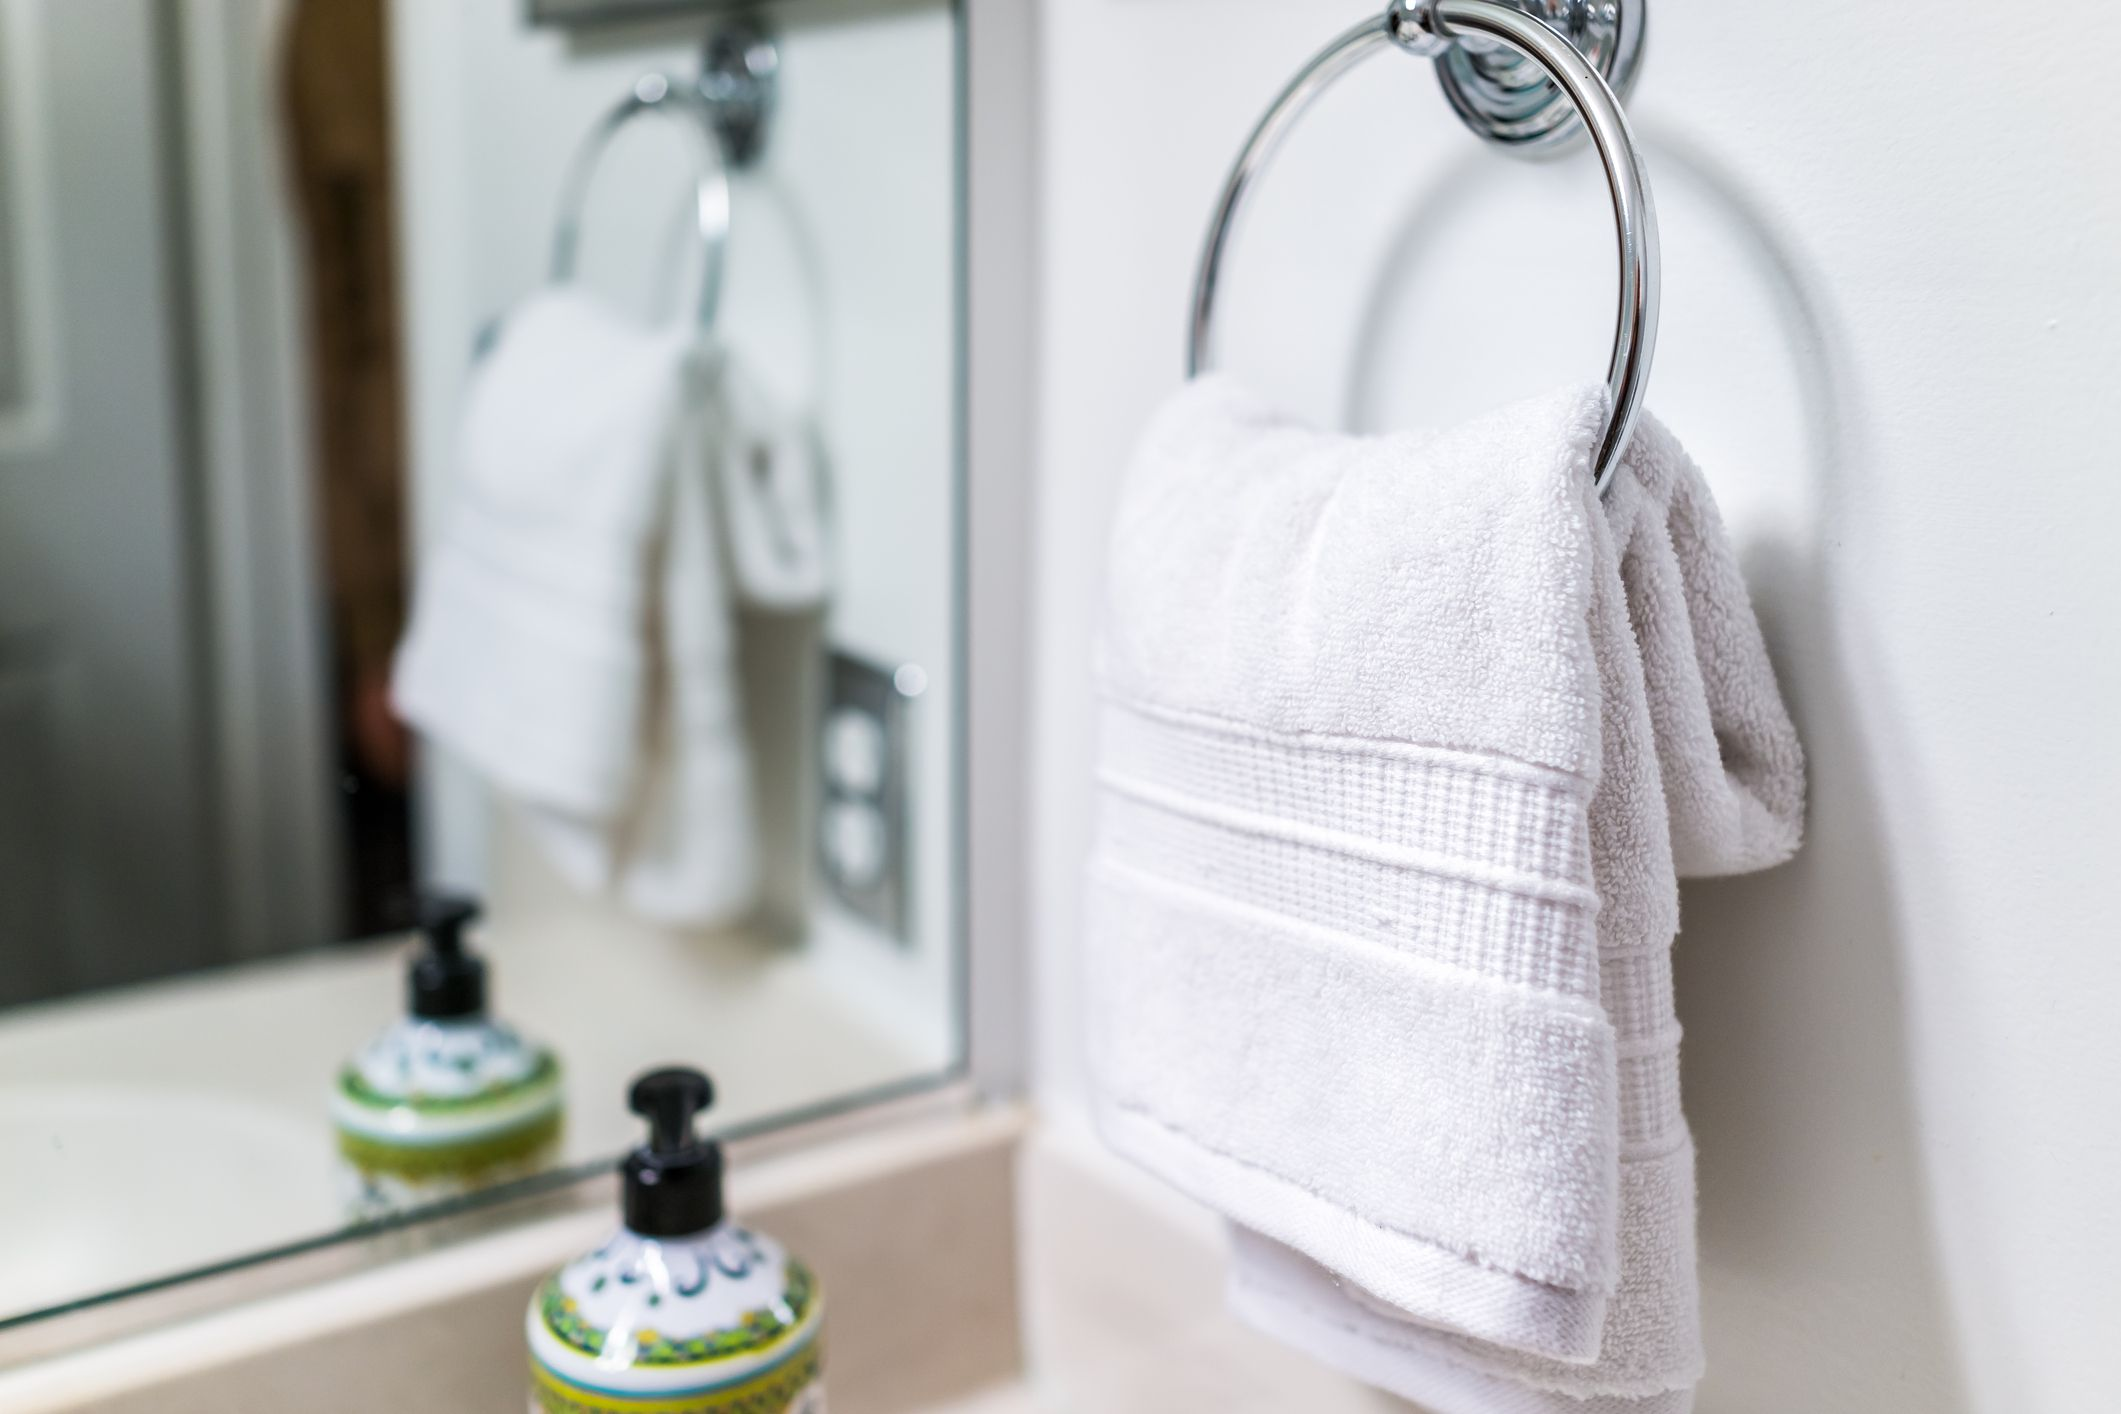 How to Install a Towel Bar and Other Bath Accessories